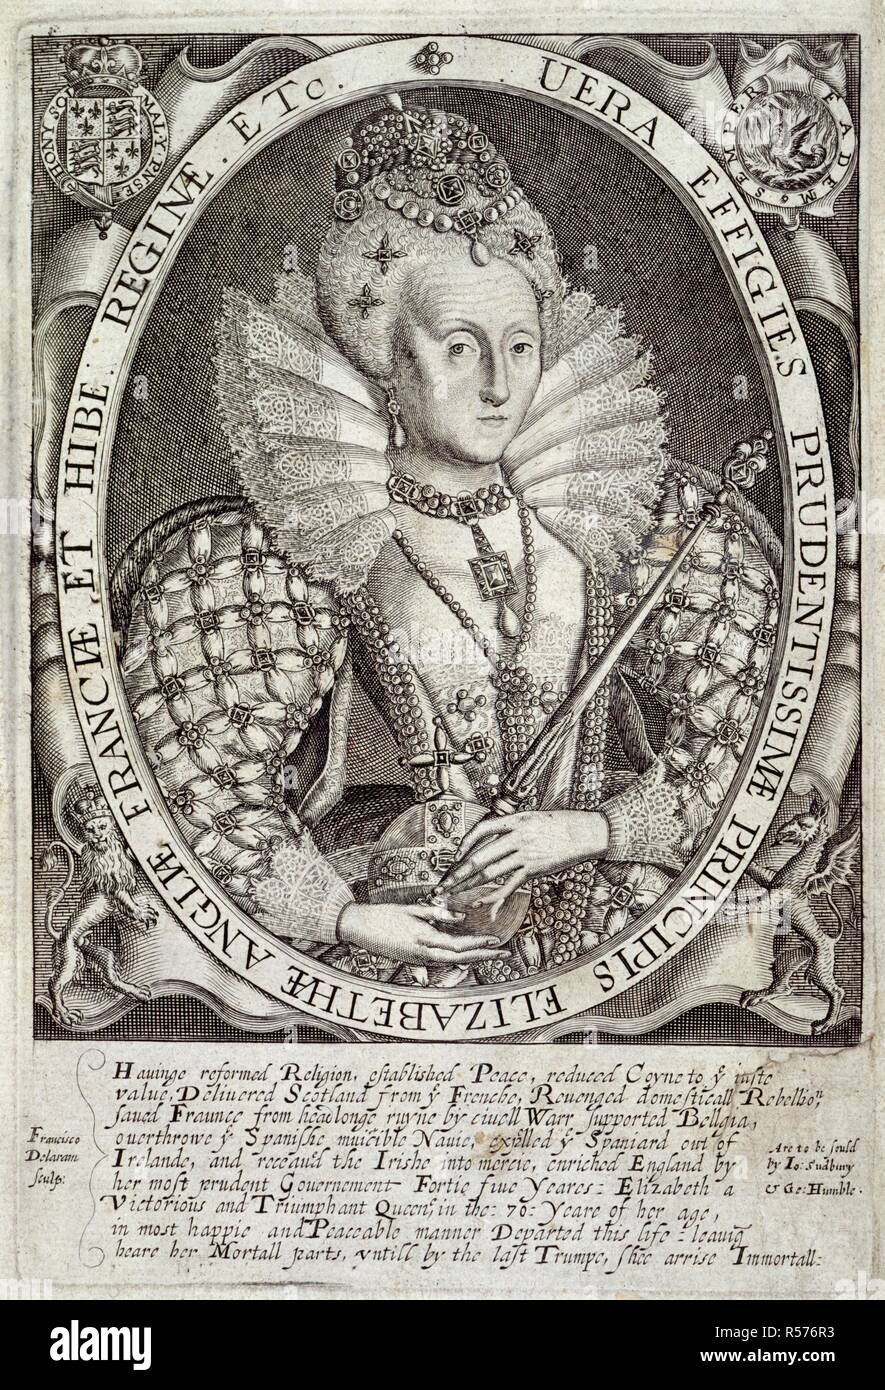 Elizabeth I. Bazili:logia, a Booke of Kings; beeing the true an. [London,] 1618. Elizabeth I (1533-1603). Queen of England and Ireland from 1558. Portrait.  Image taken from Bazili:logia, a Booke of Kings; beeing the true and likely Effigies of all our English Kings from the Conquest untill this present. With their severall Coats of Armes, Impreses and Devises graven in copper [by R. Elstracke and others], etc..  Originally published/produced in [London,] 1618. . Source: C.38.g.3,. - Stock Image